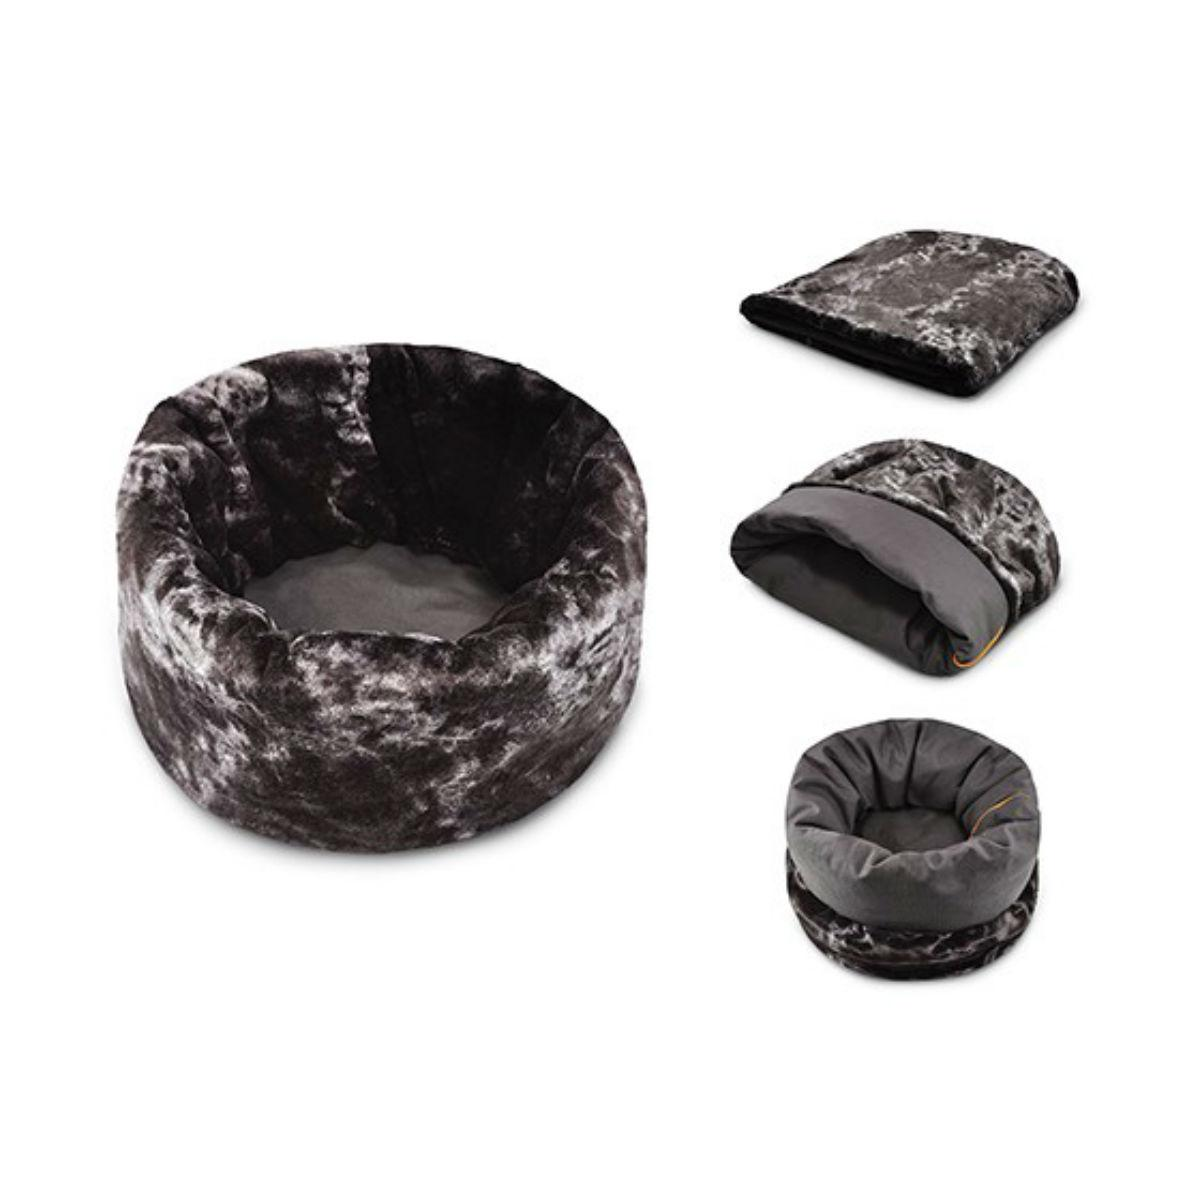 P.L.A.Y. Snuggle Dog Bed - Charcoal Gray